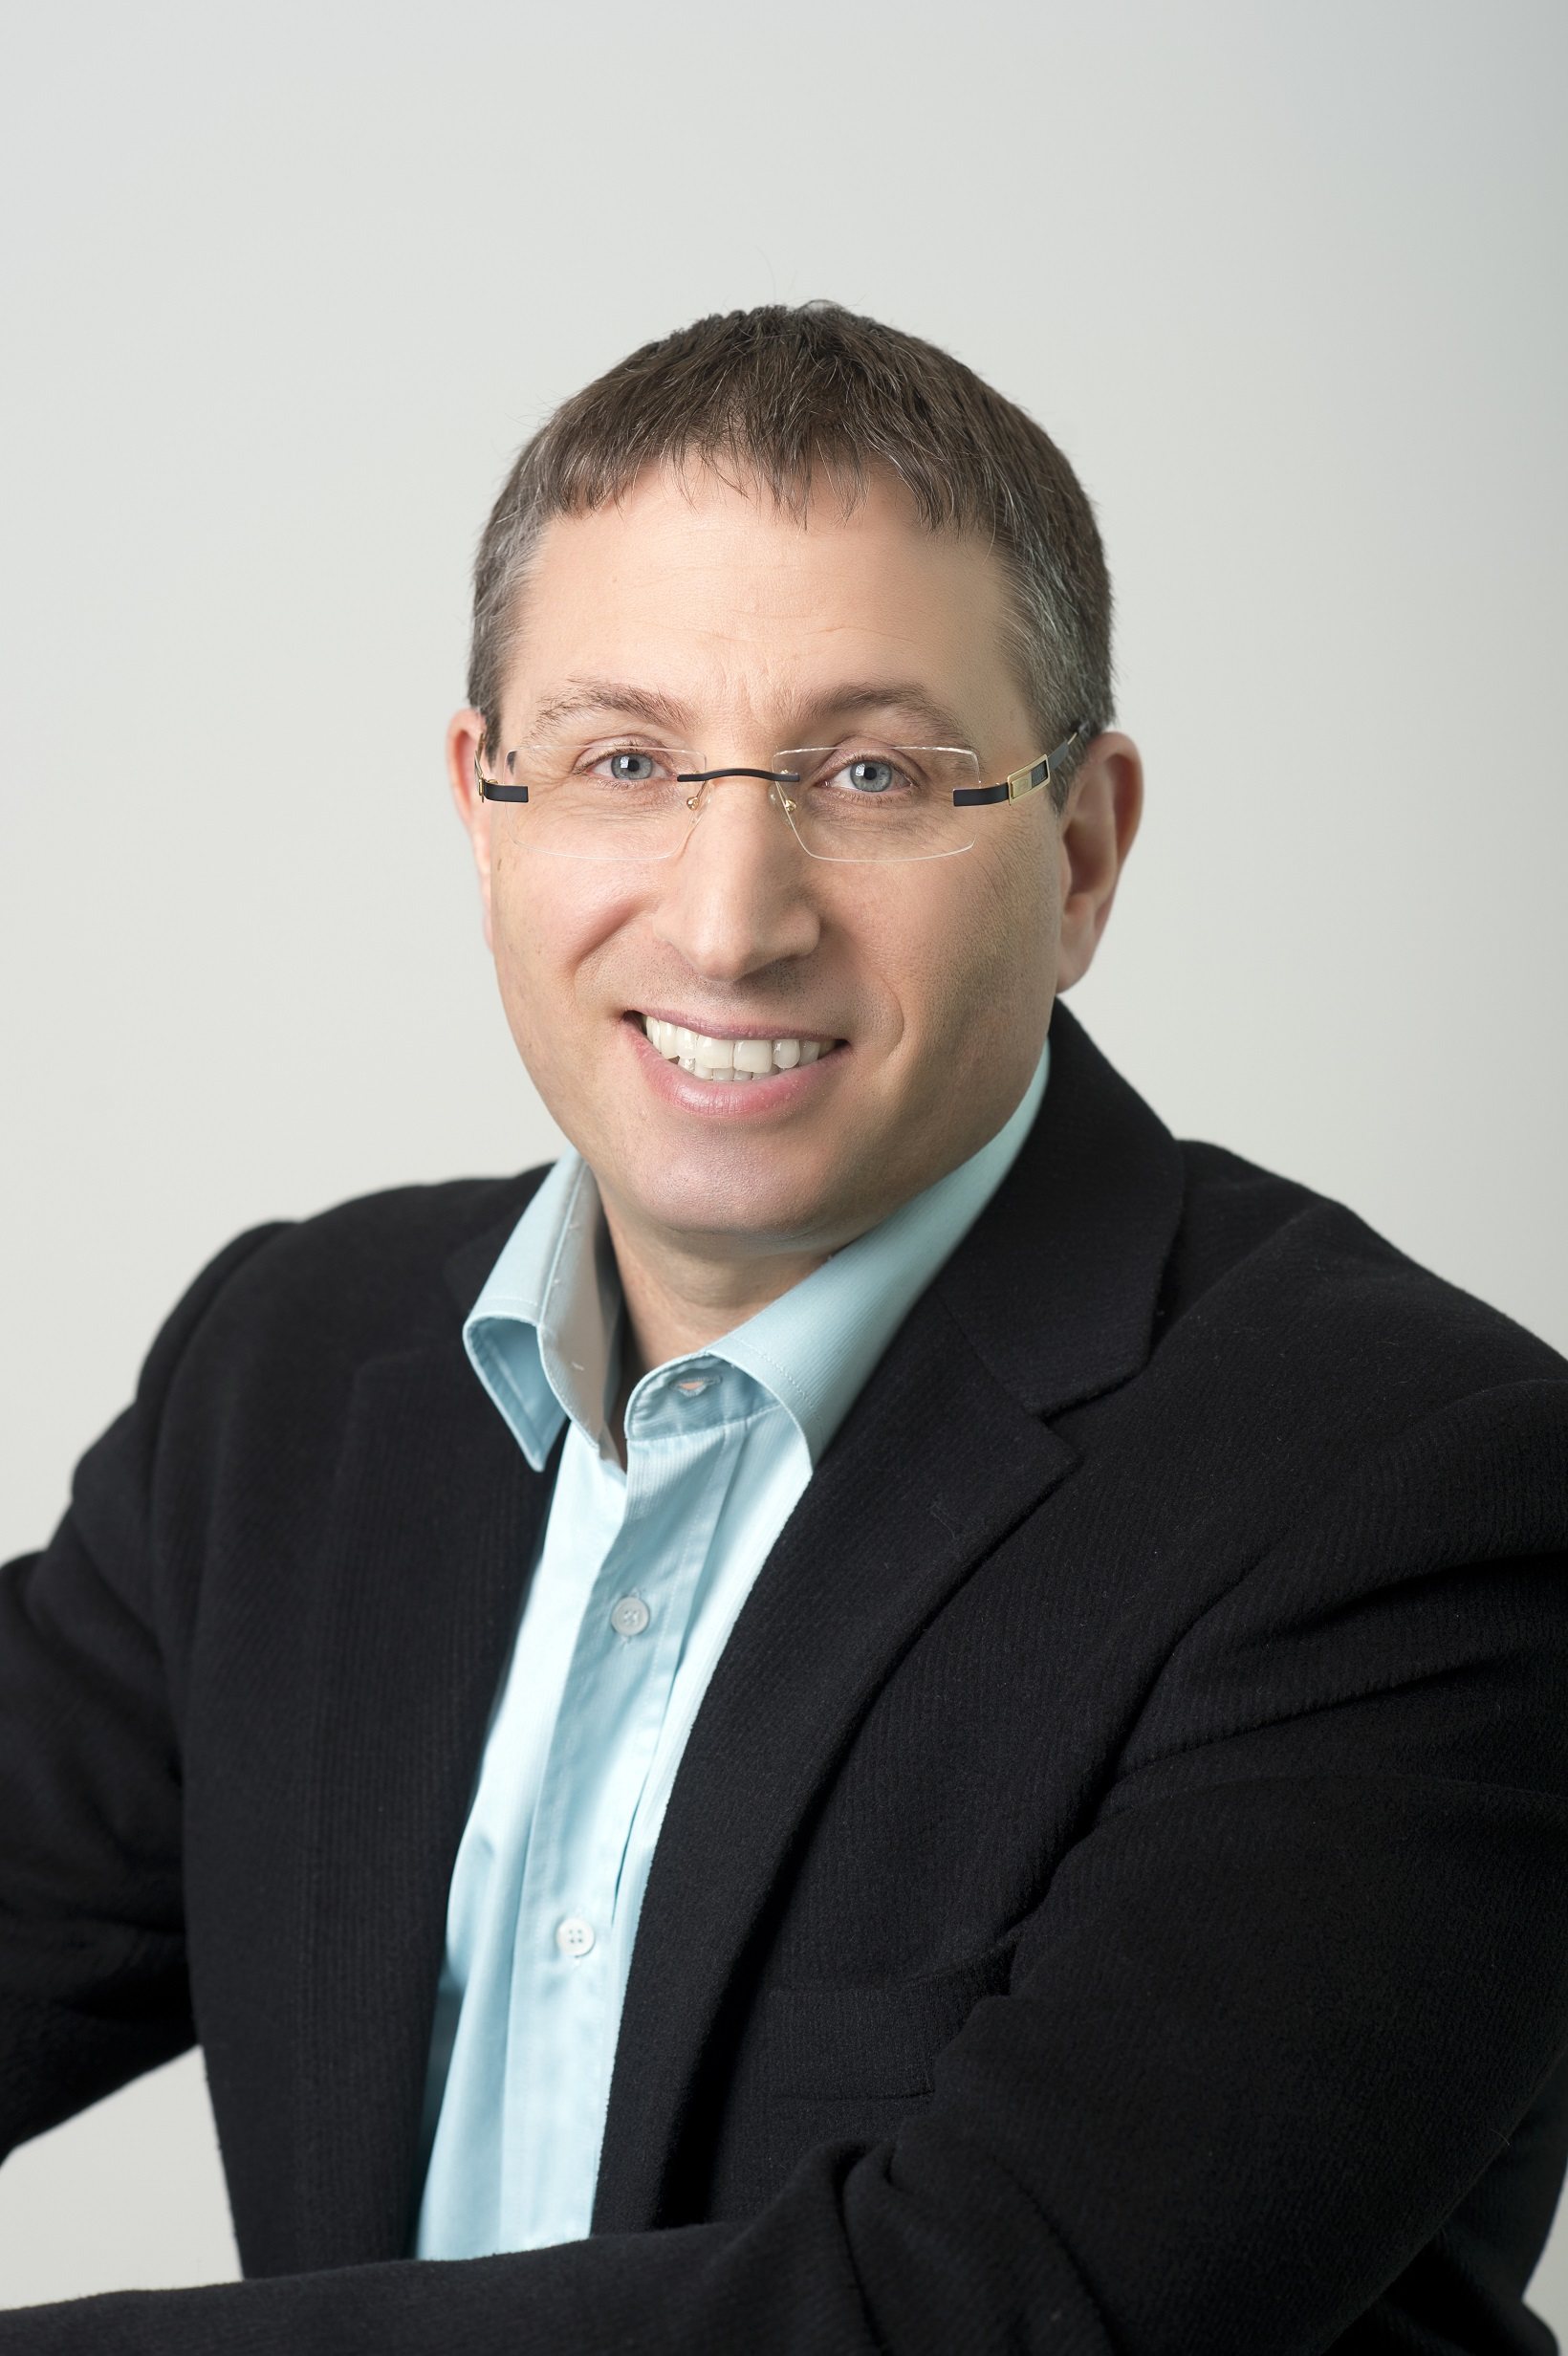 Ethan Hadar, Manager of Augmented Reality and Computer Vision at IBM Research - Haifa